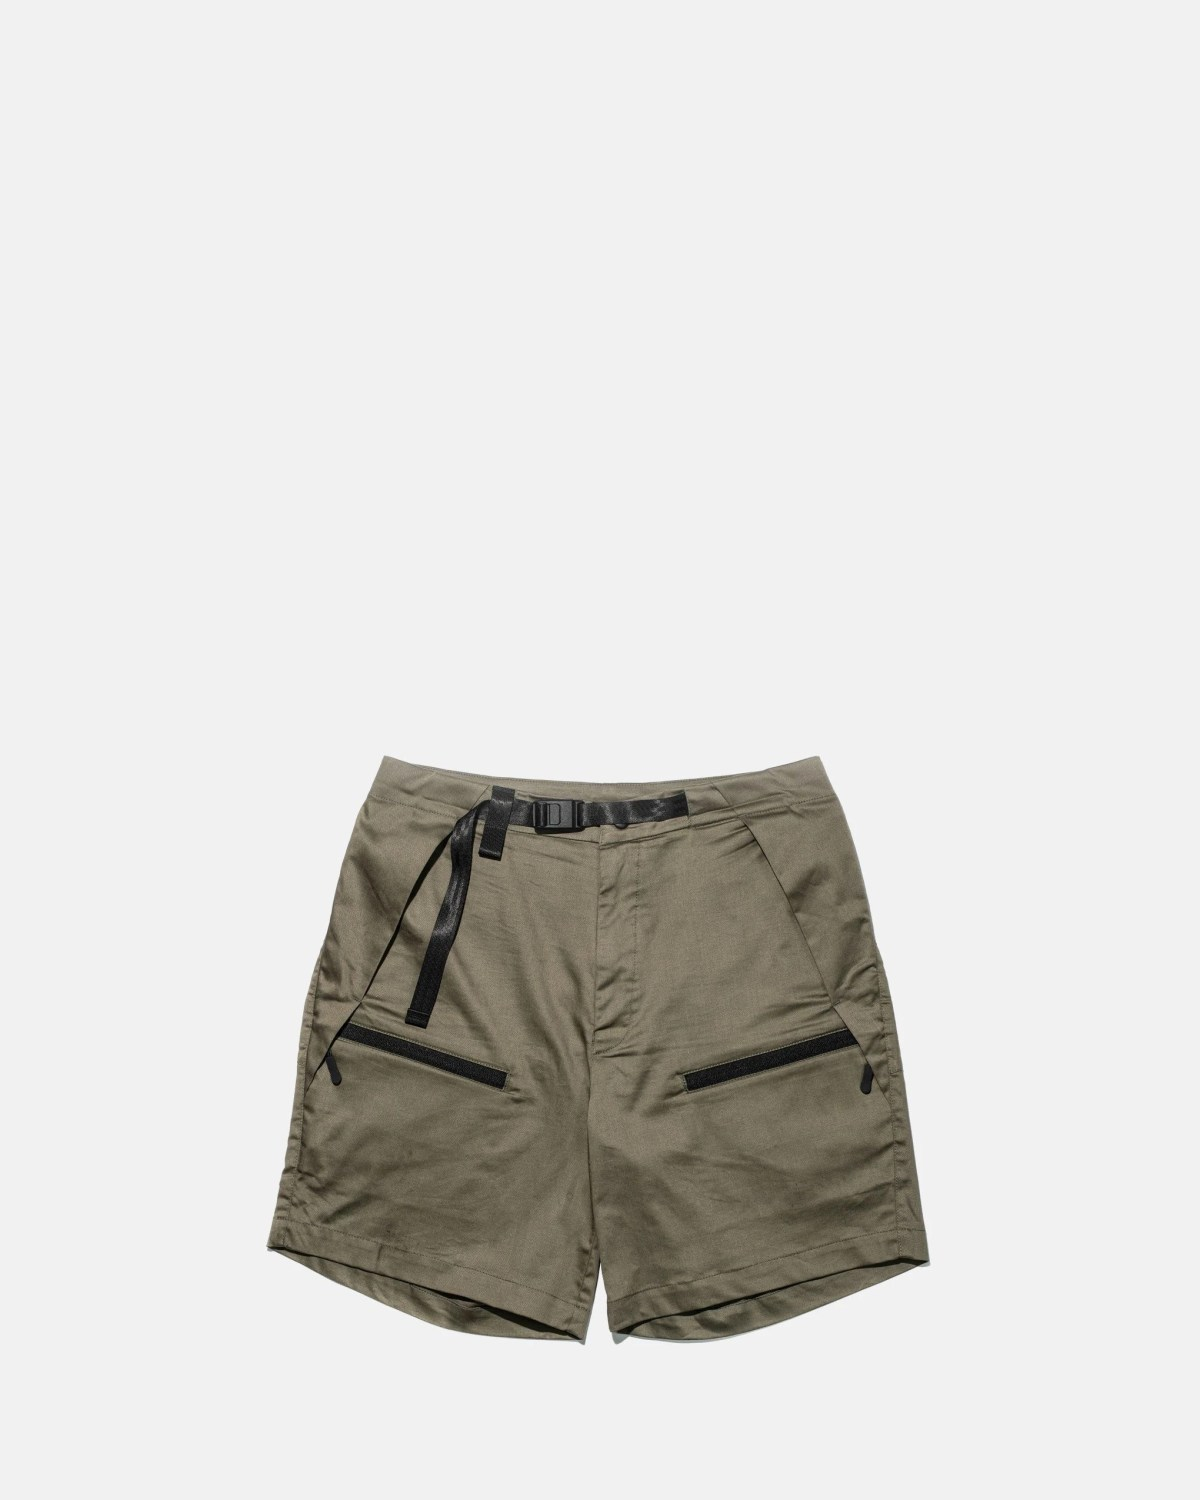 KIN-SUPPLIES-Recruit-Shorts-Olive-FRONT.jpg